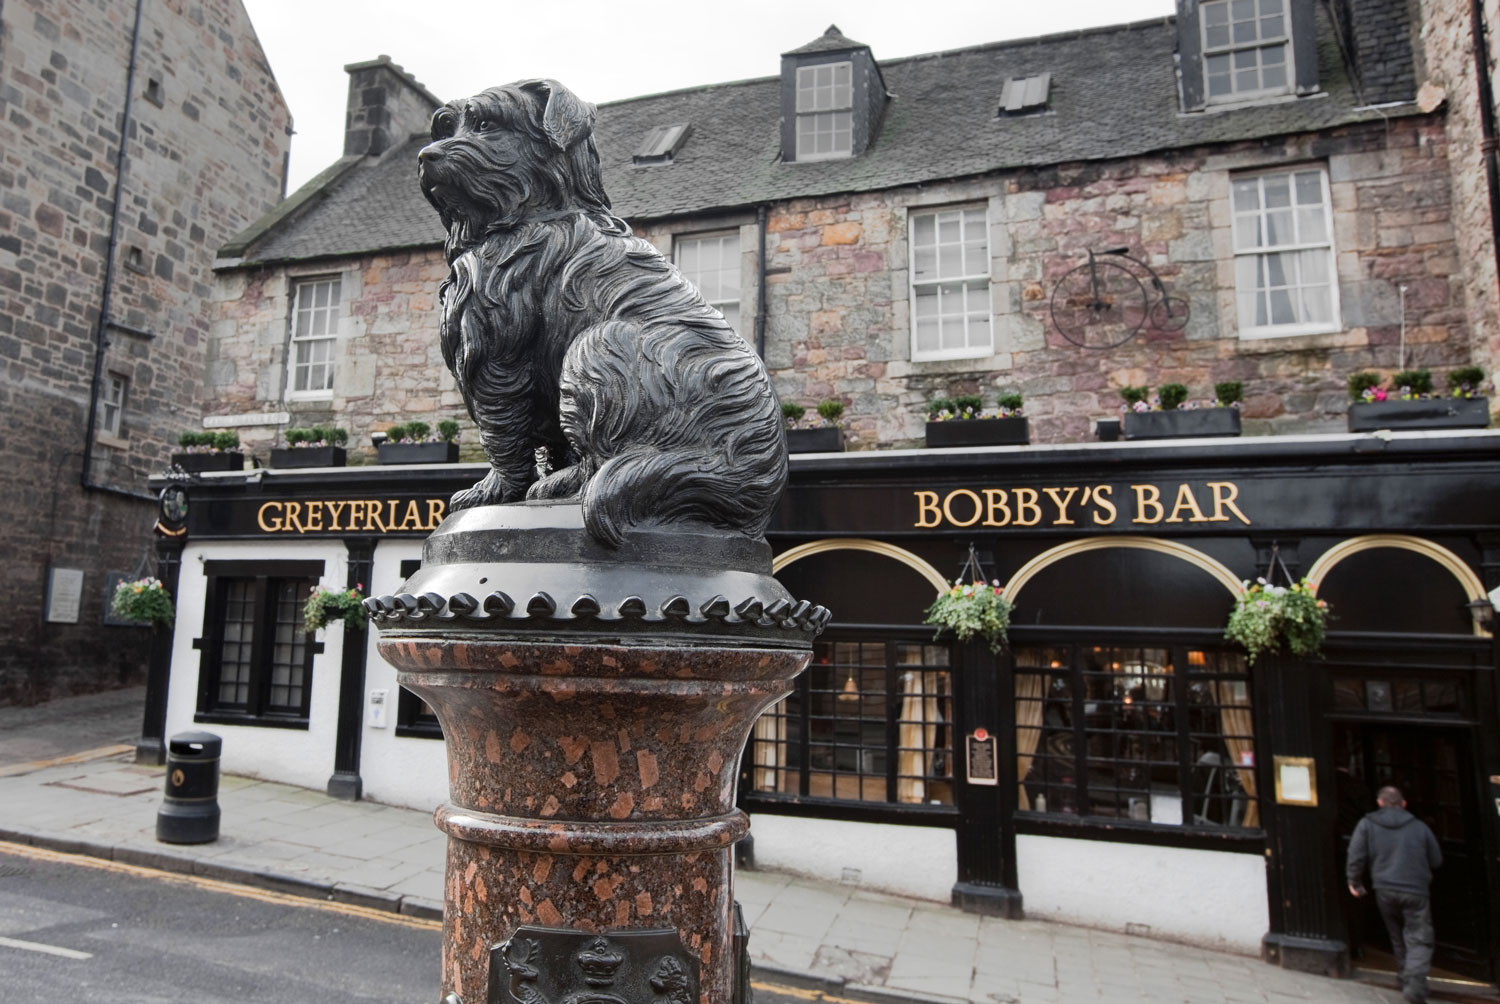 statue of a Skye Terrier named Bobby at the corner of Candlemaker's Row and St. George's Bridge